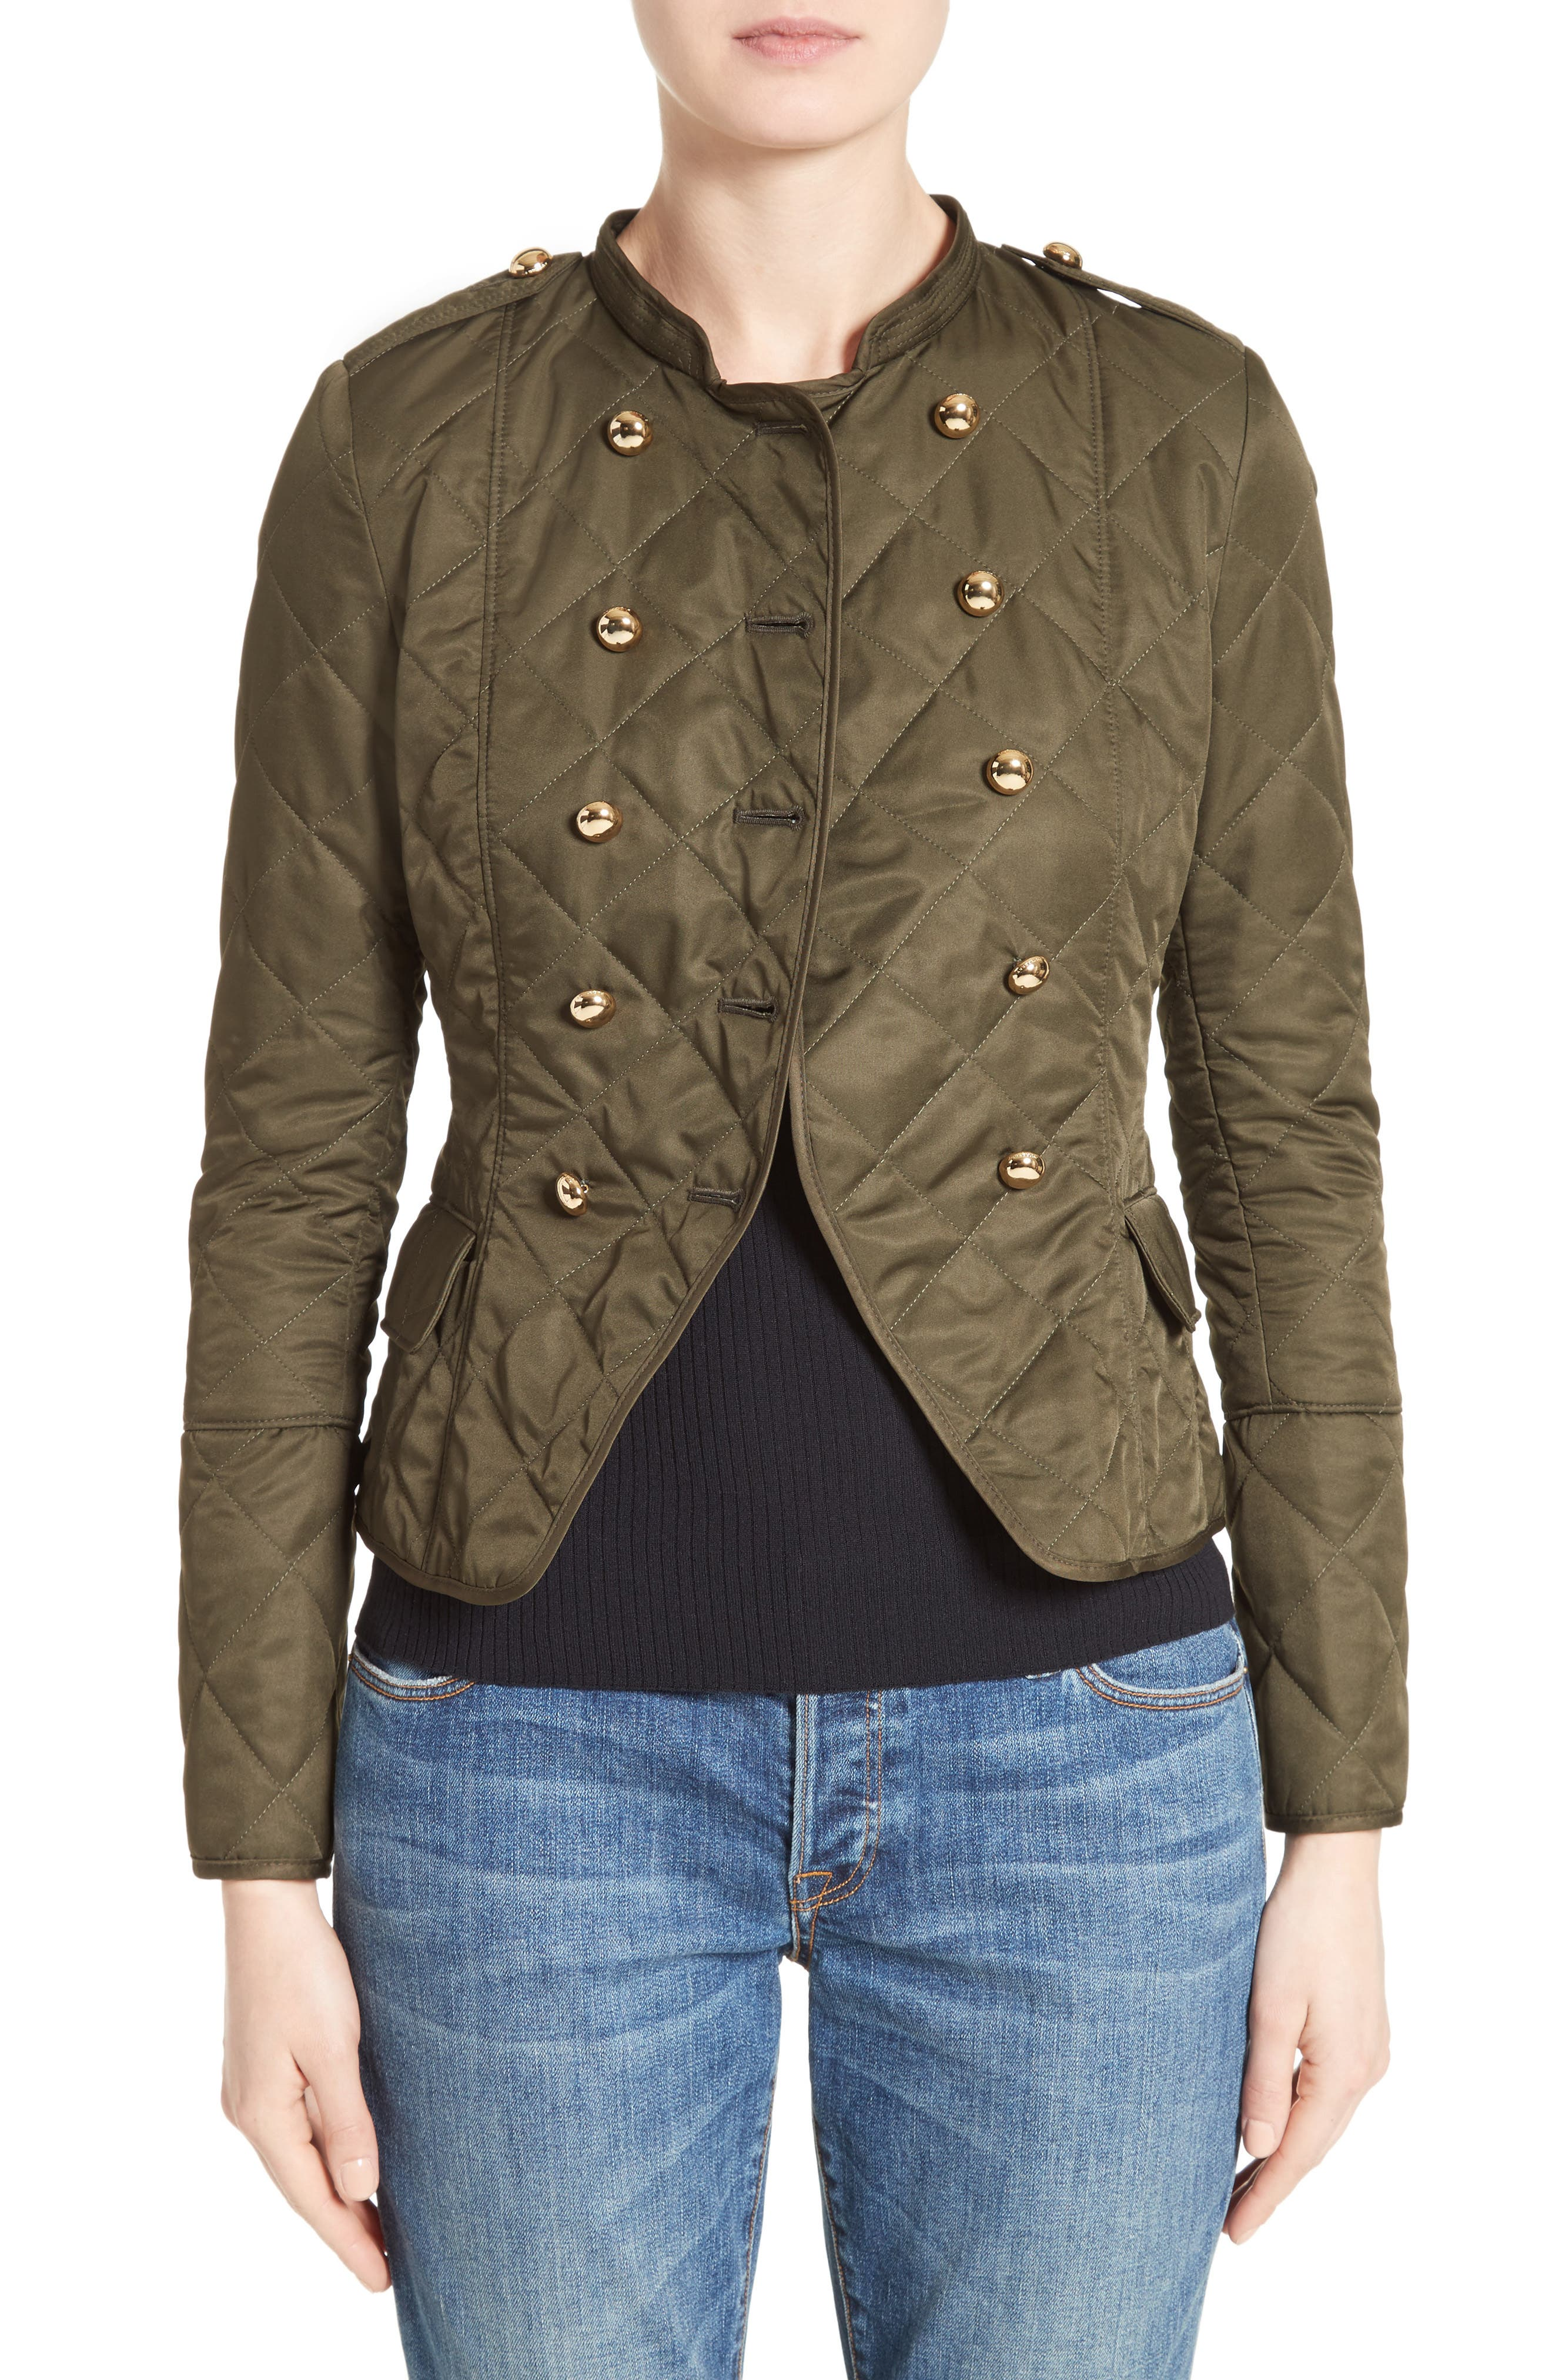 Boscastle Quilted Military Jacket,                         Main,                         color, 301